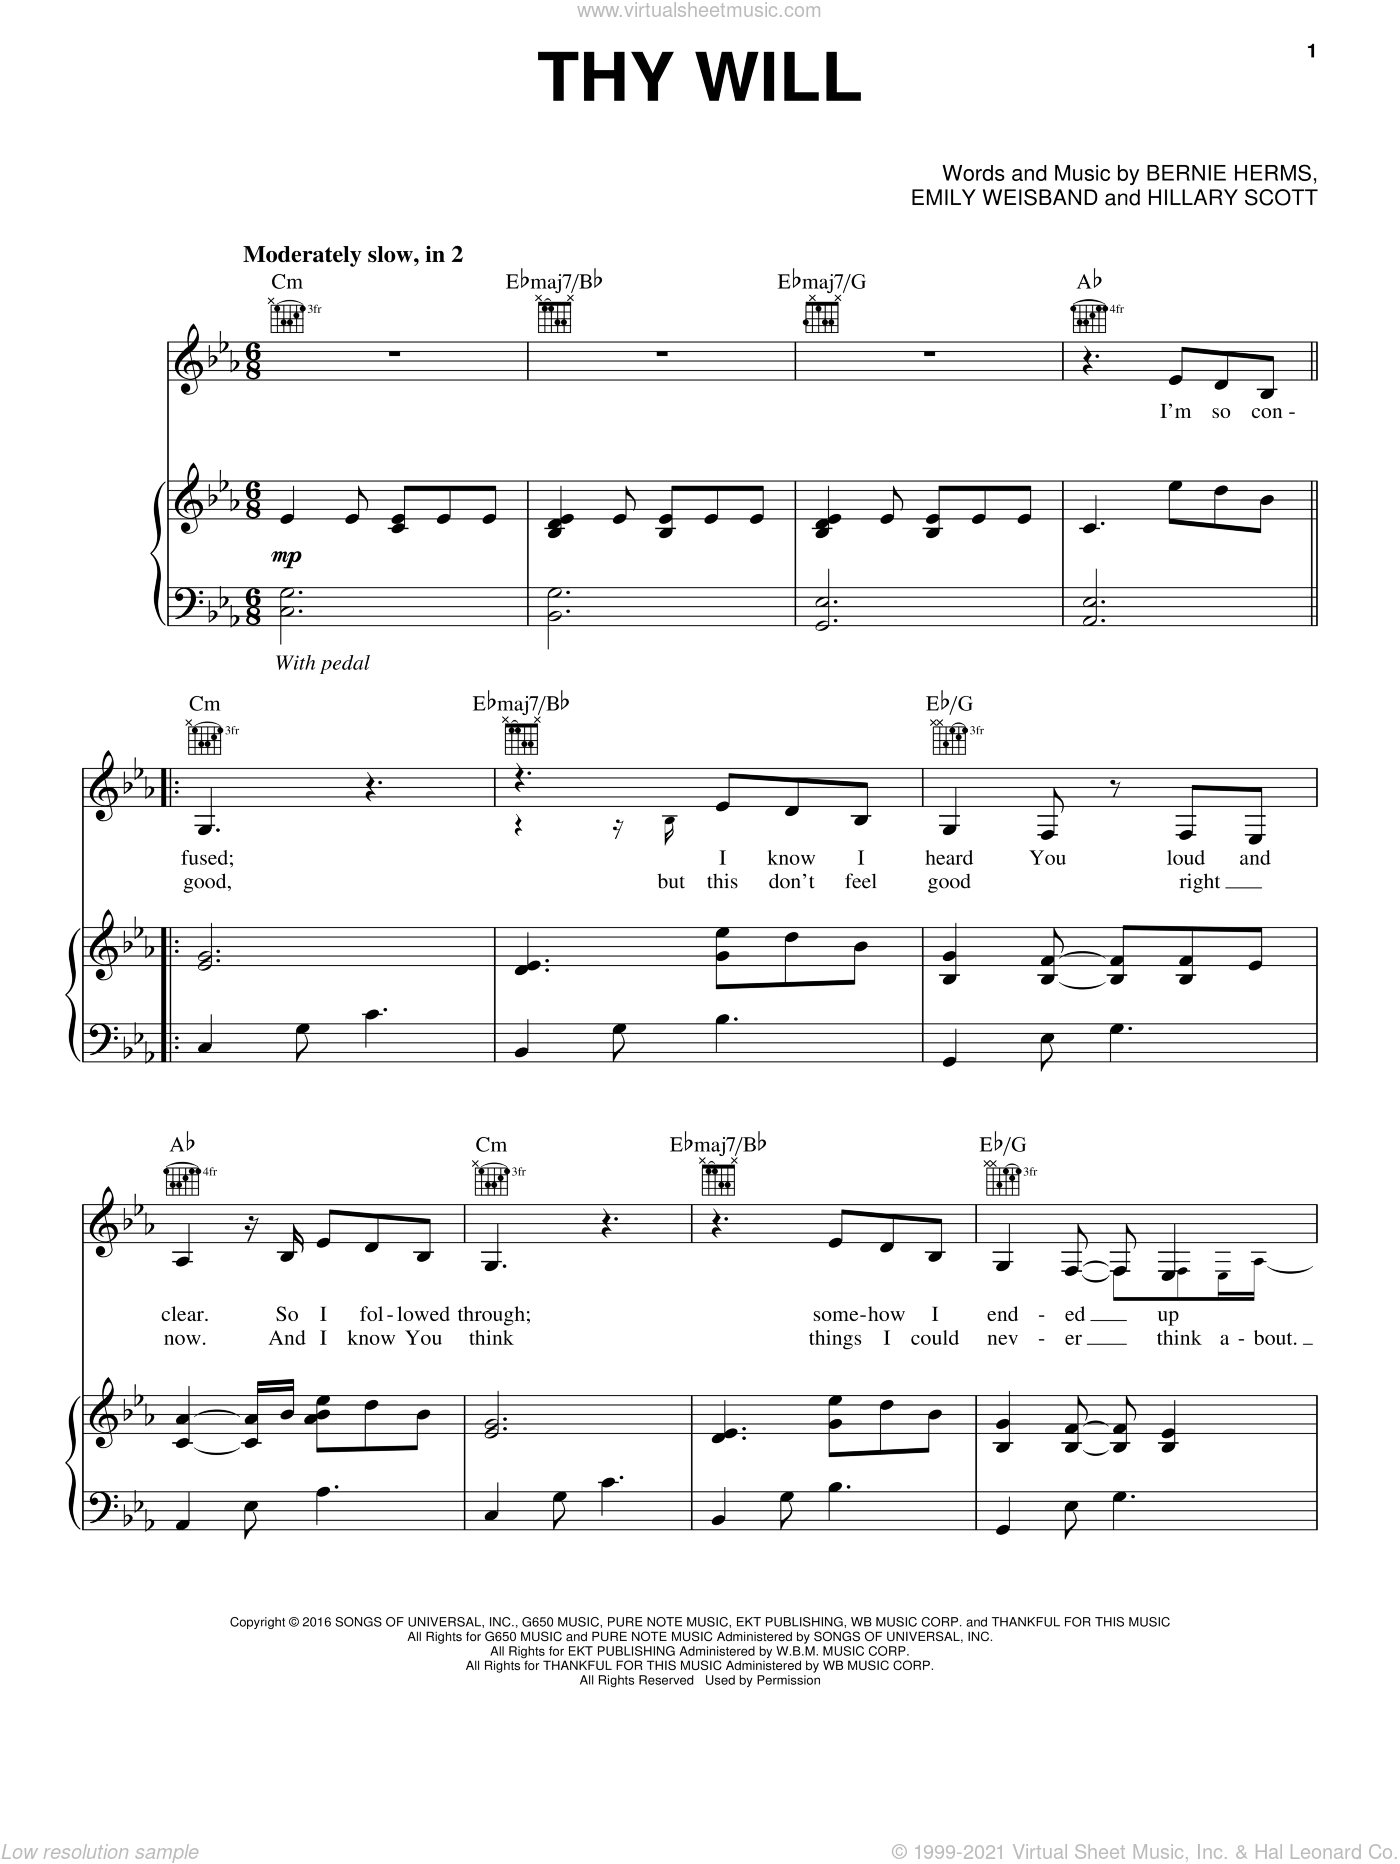 Thy Will sheet music for voice, piano or guitar by Hillary Scott